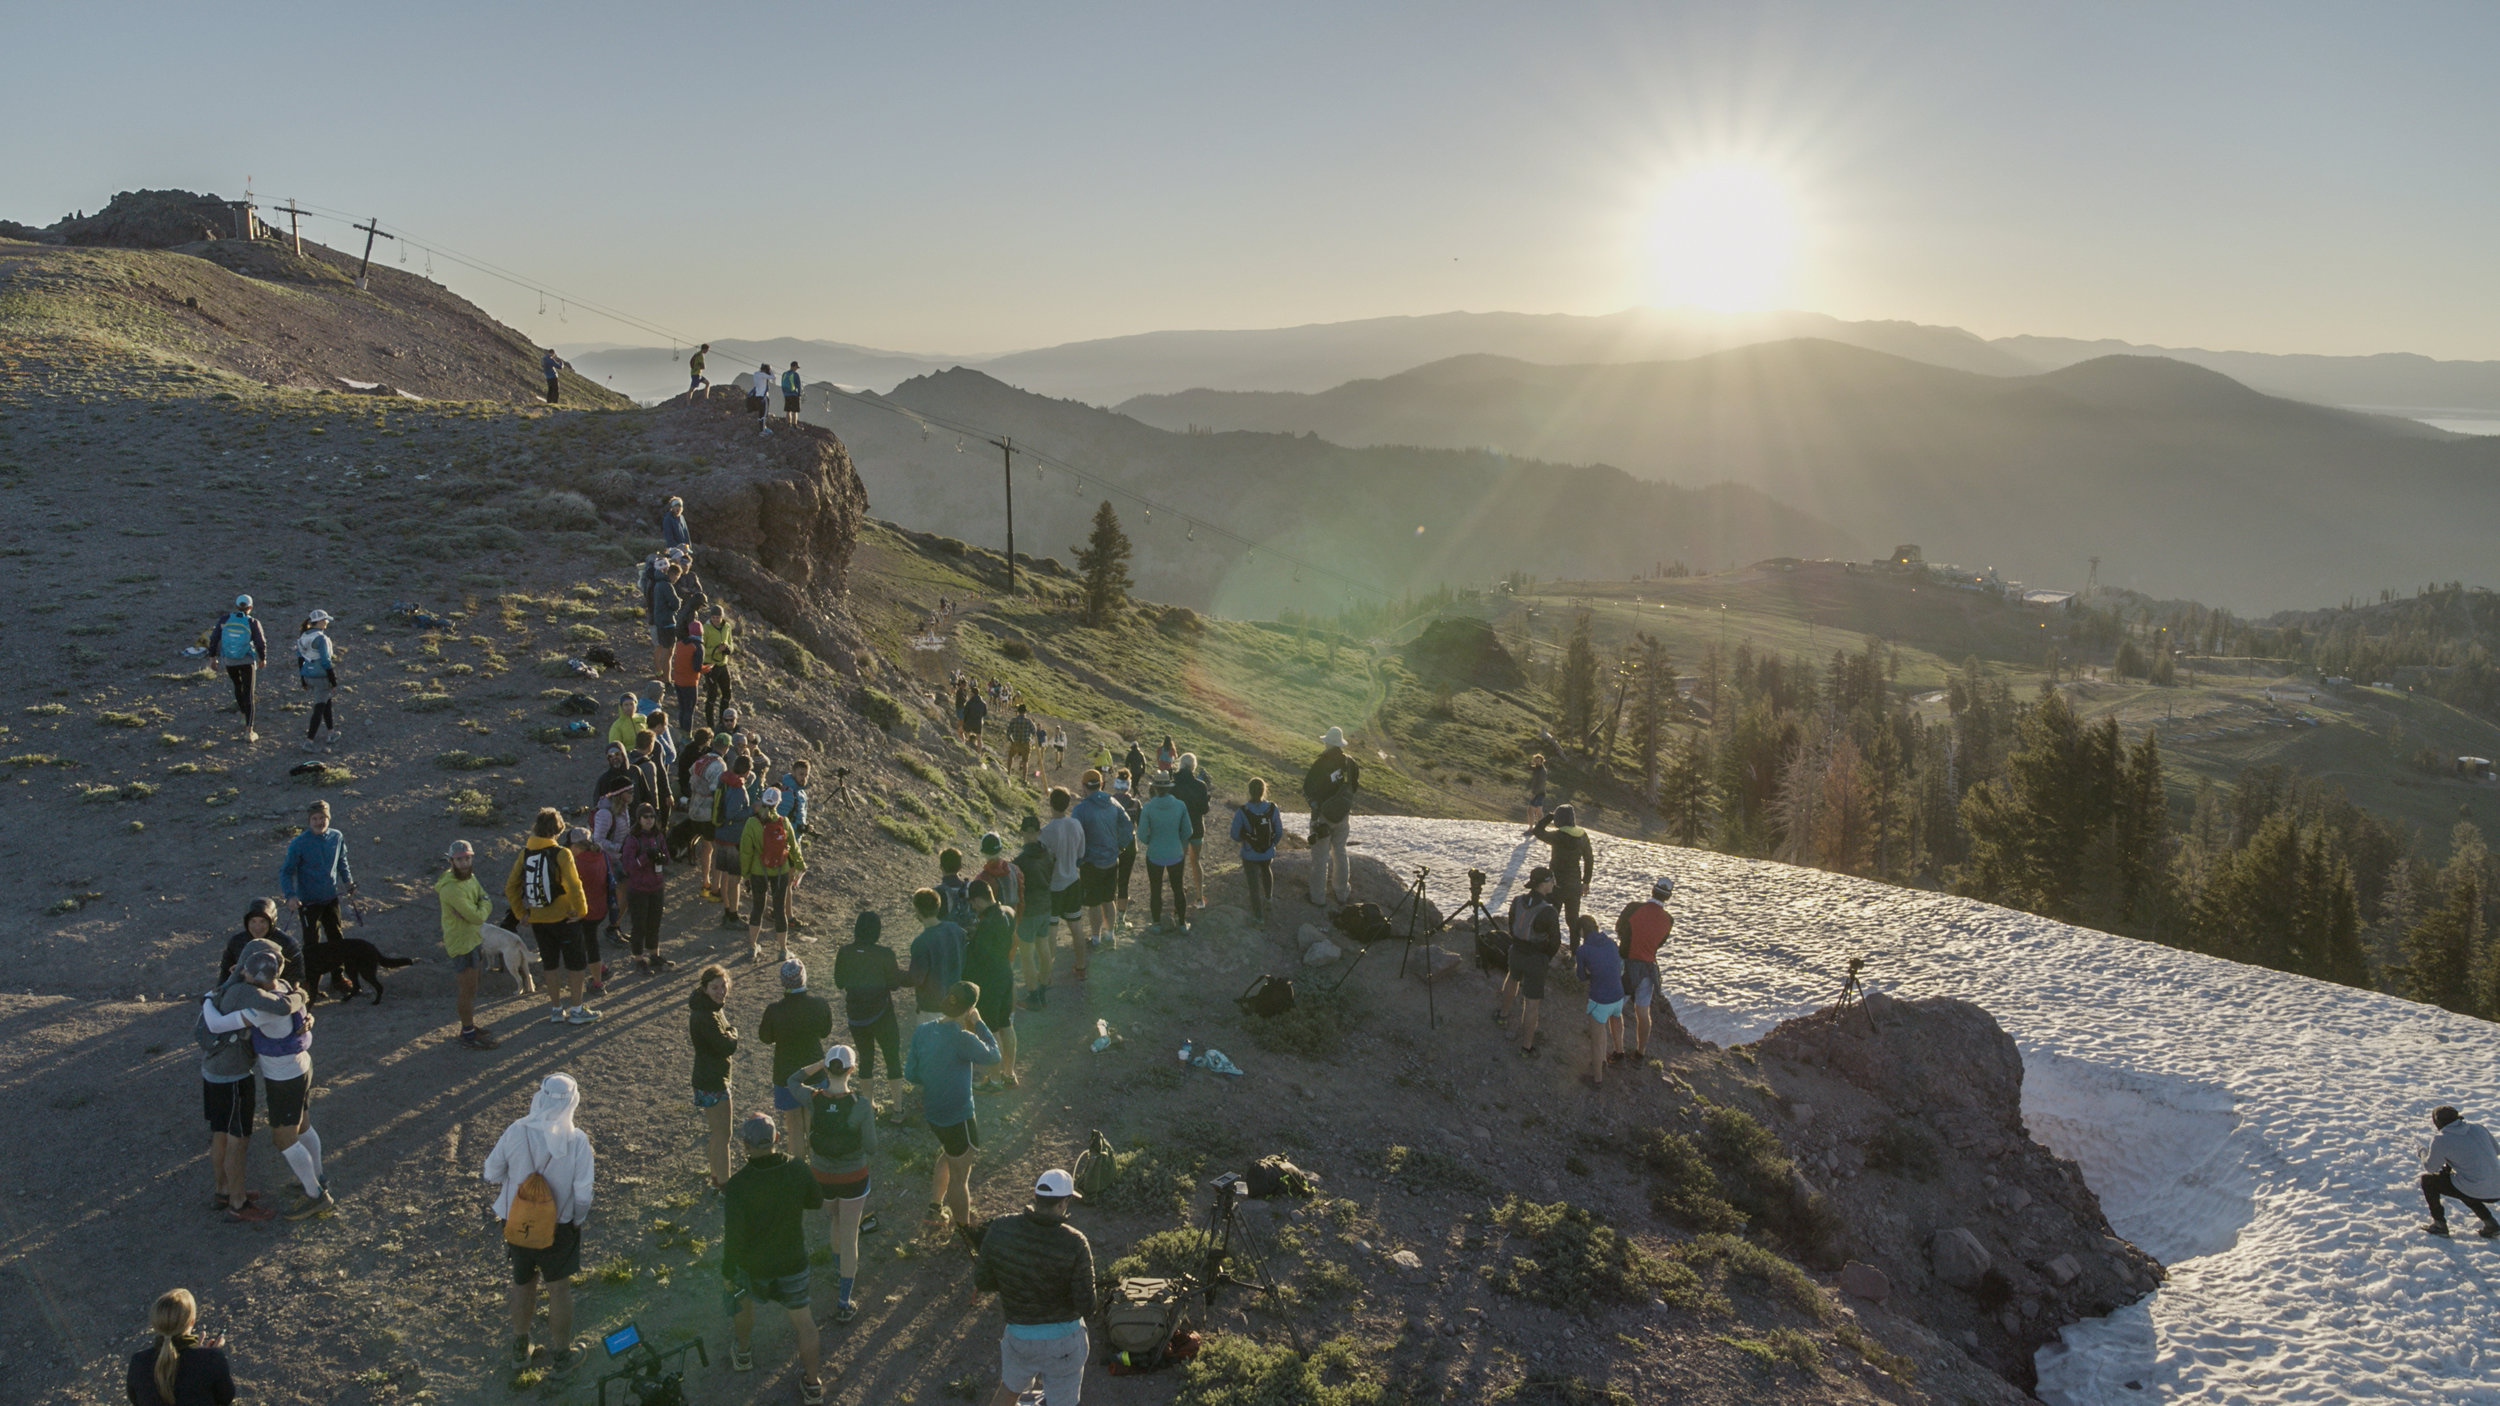 Runners crest the top of the escarpment at Squaw Valley just after sunrise. They have completed 3 of 100 miles. Squaw Valley, California.